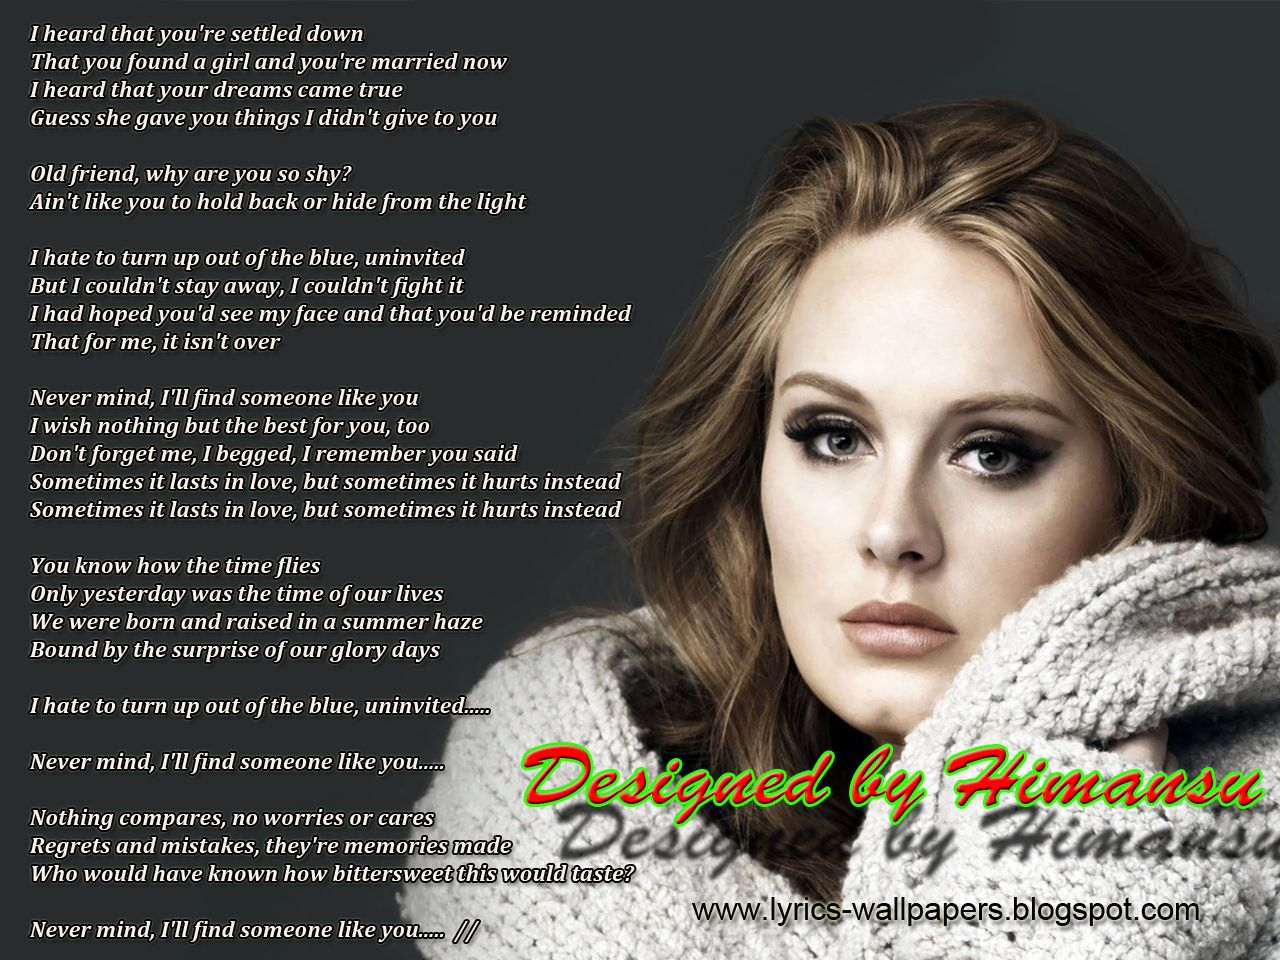 """an analysis of the song someone like you by adele adkins Adele has been number one in the uk album charts for 10 weeks running, the   where the opening piano motif from her ballad someone like you has  she just  sings big songs with a big voice that brings her audience to an awed standstill   1 it says """"adele laurie blue adkins"""" on her birth certificate."""